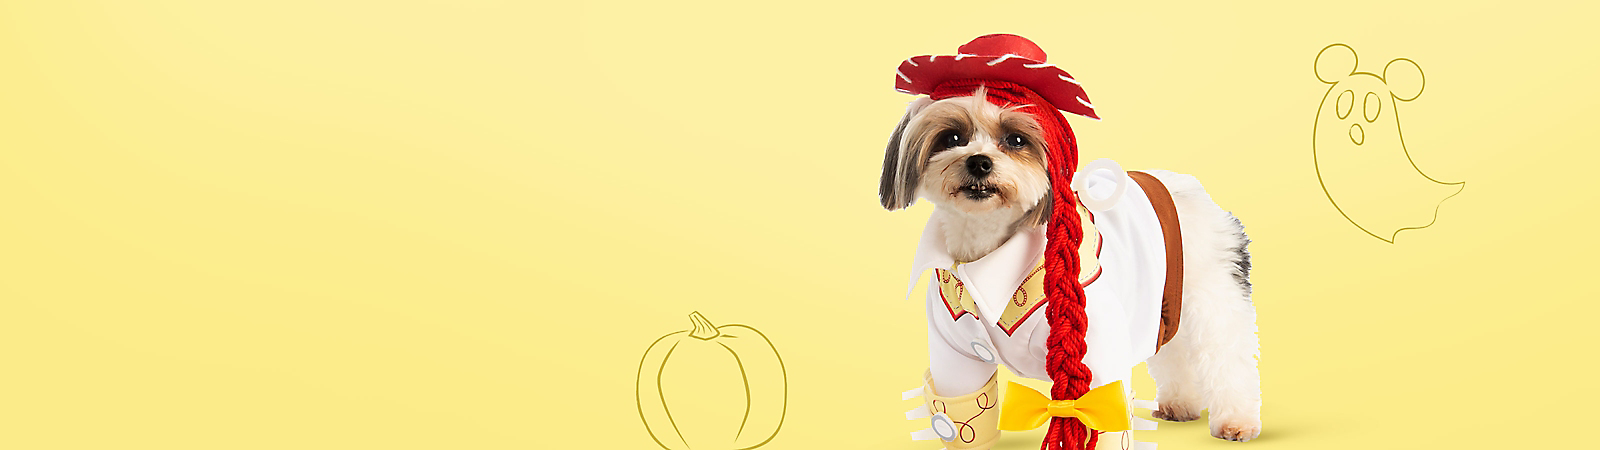 Background image of Pet Costumes